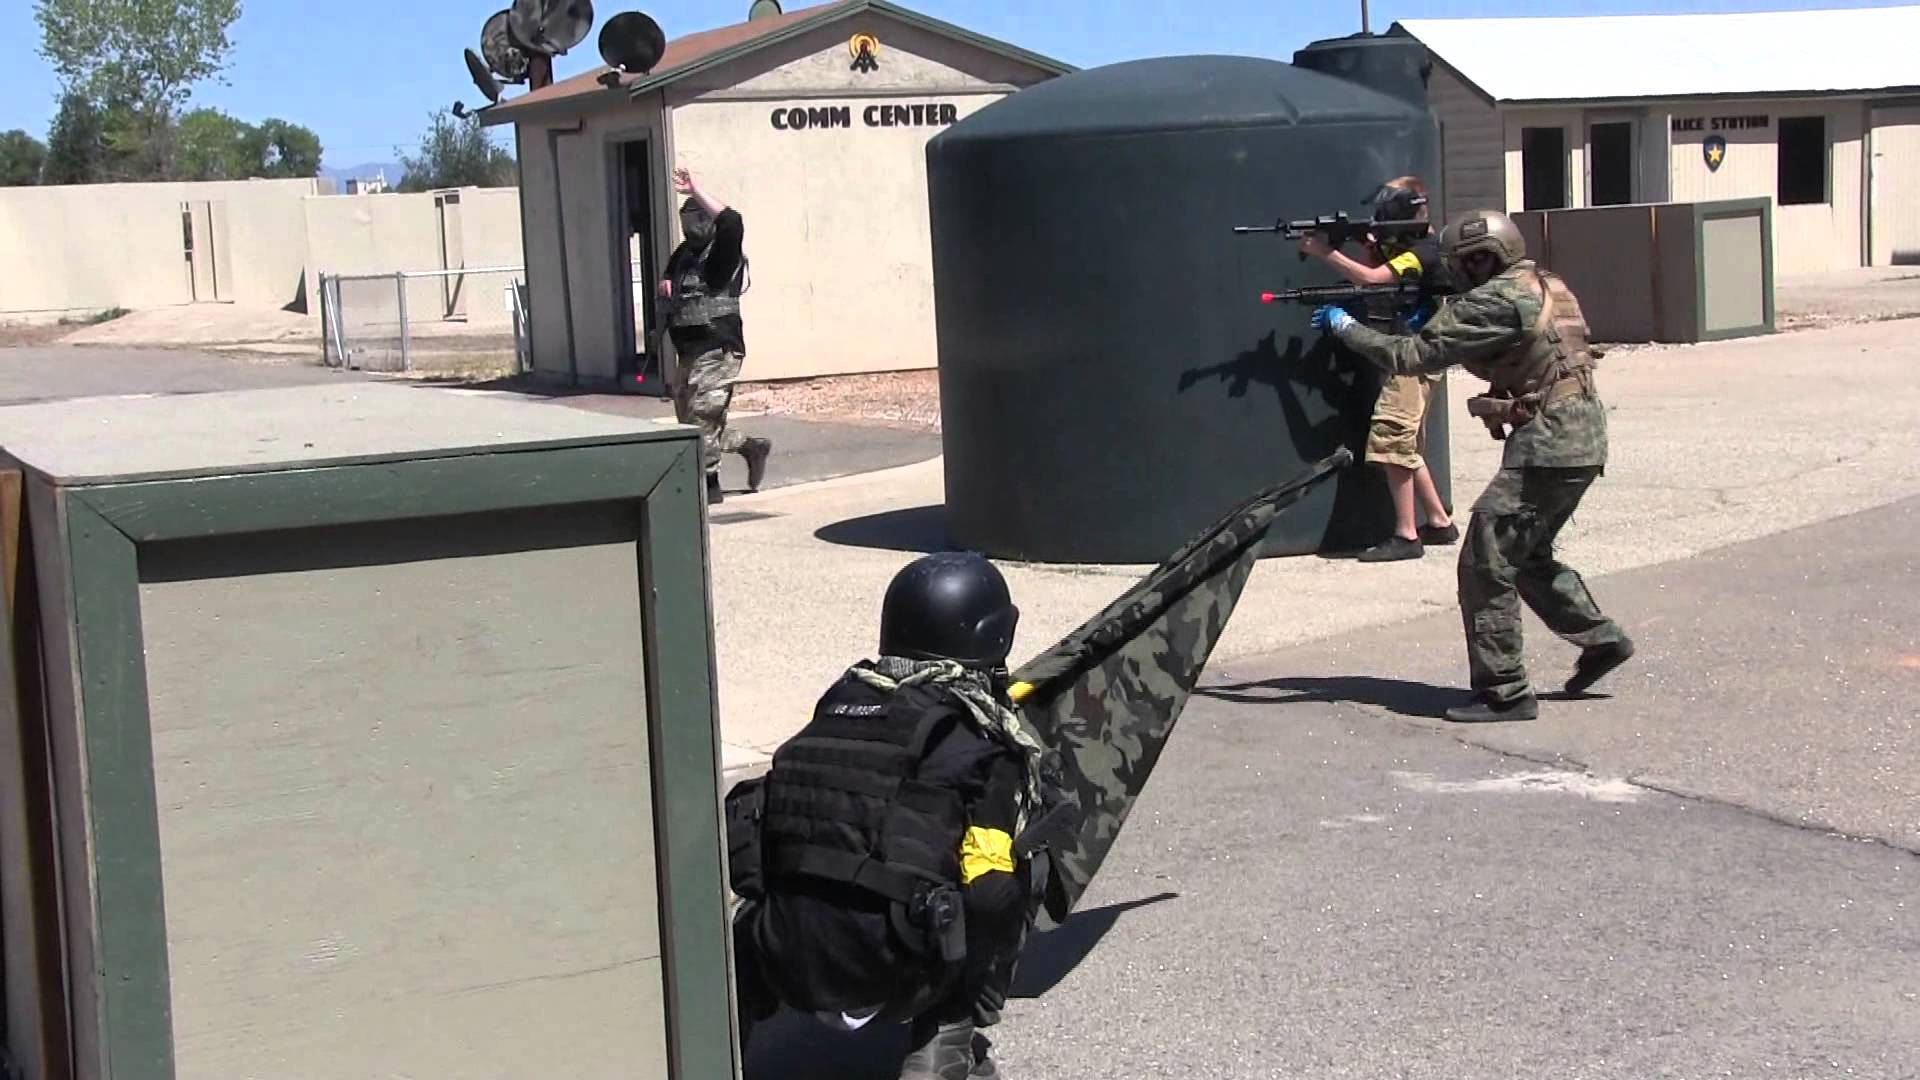 California airsoft